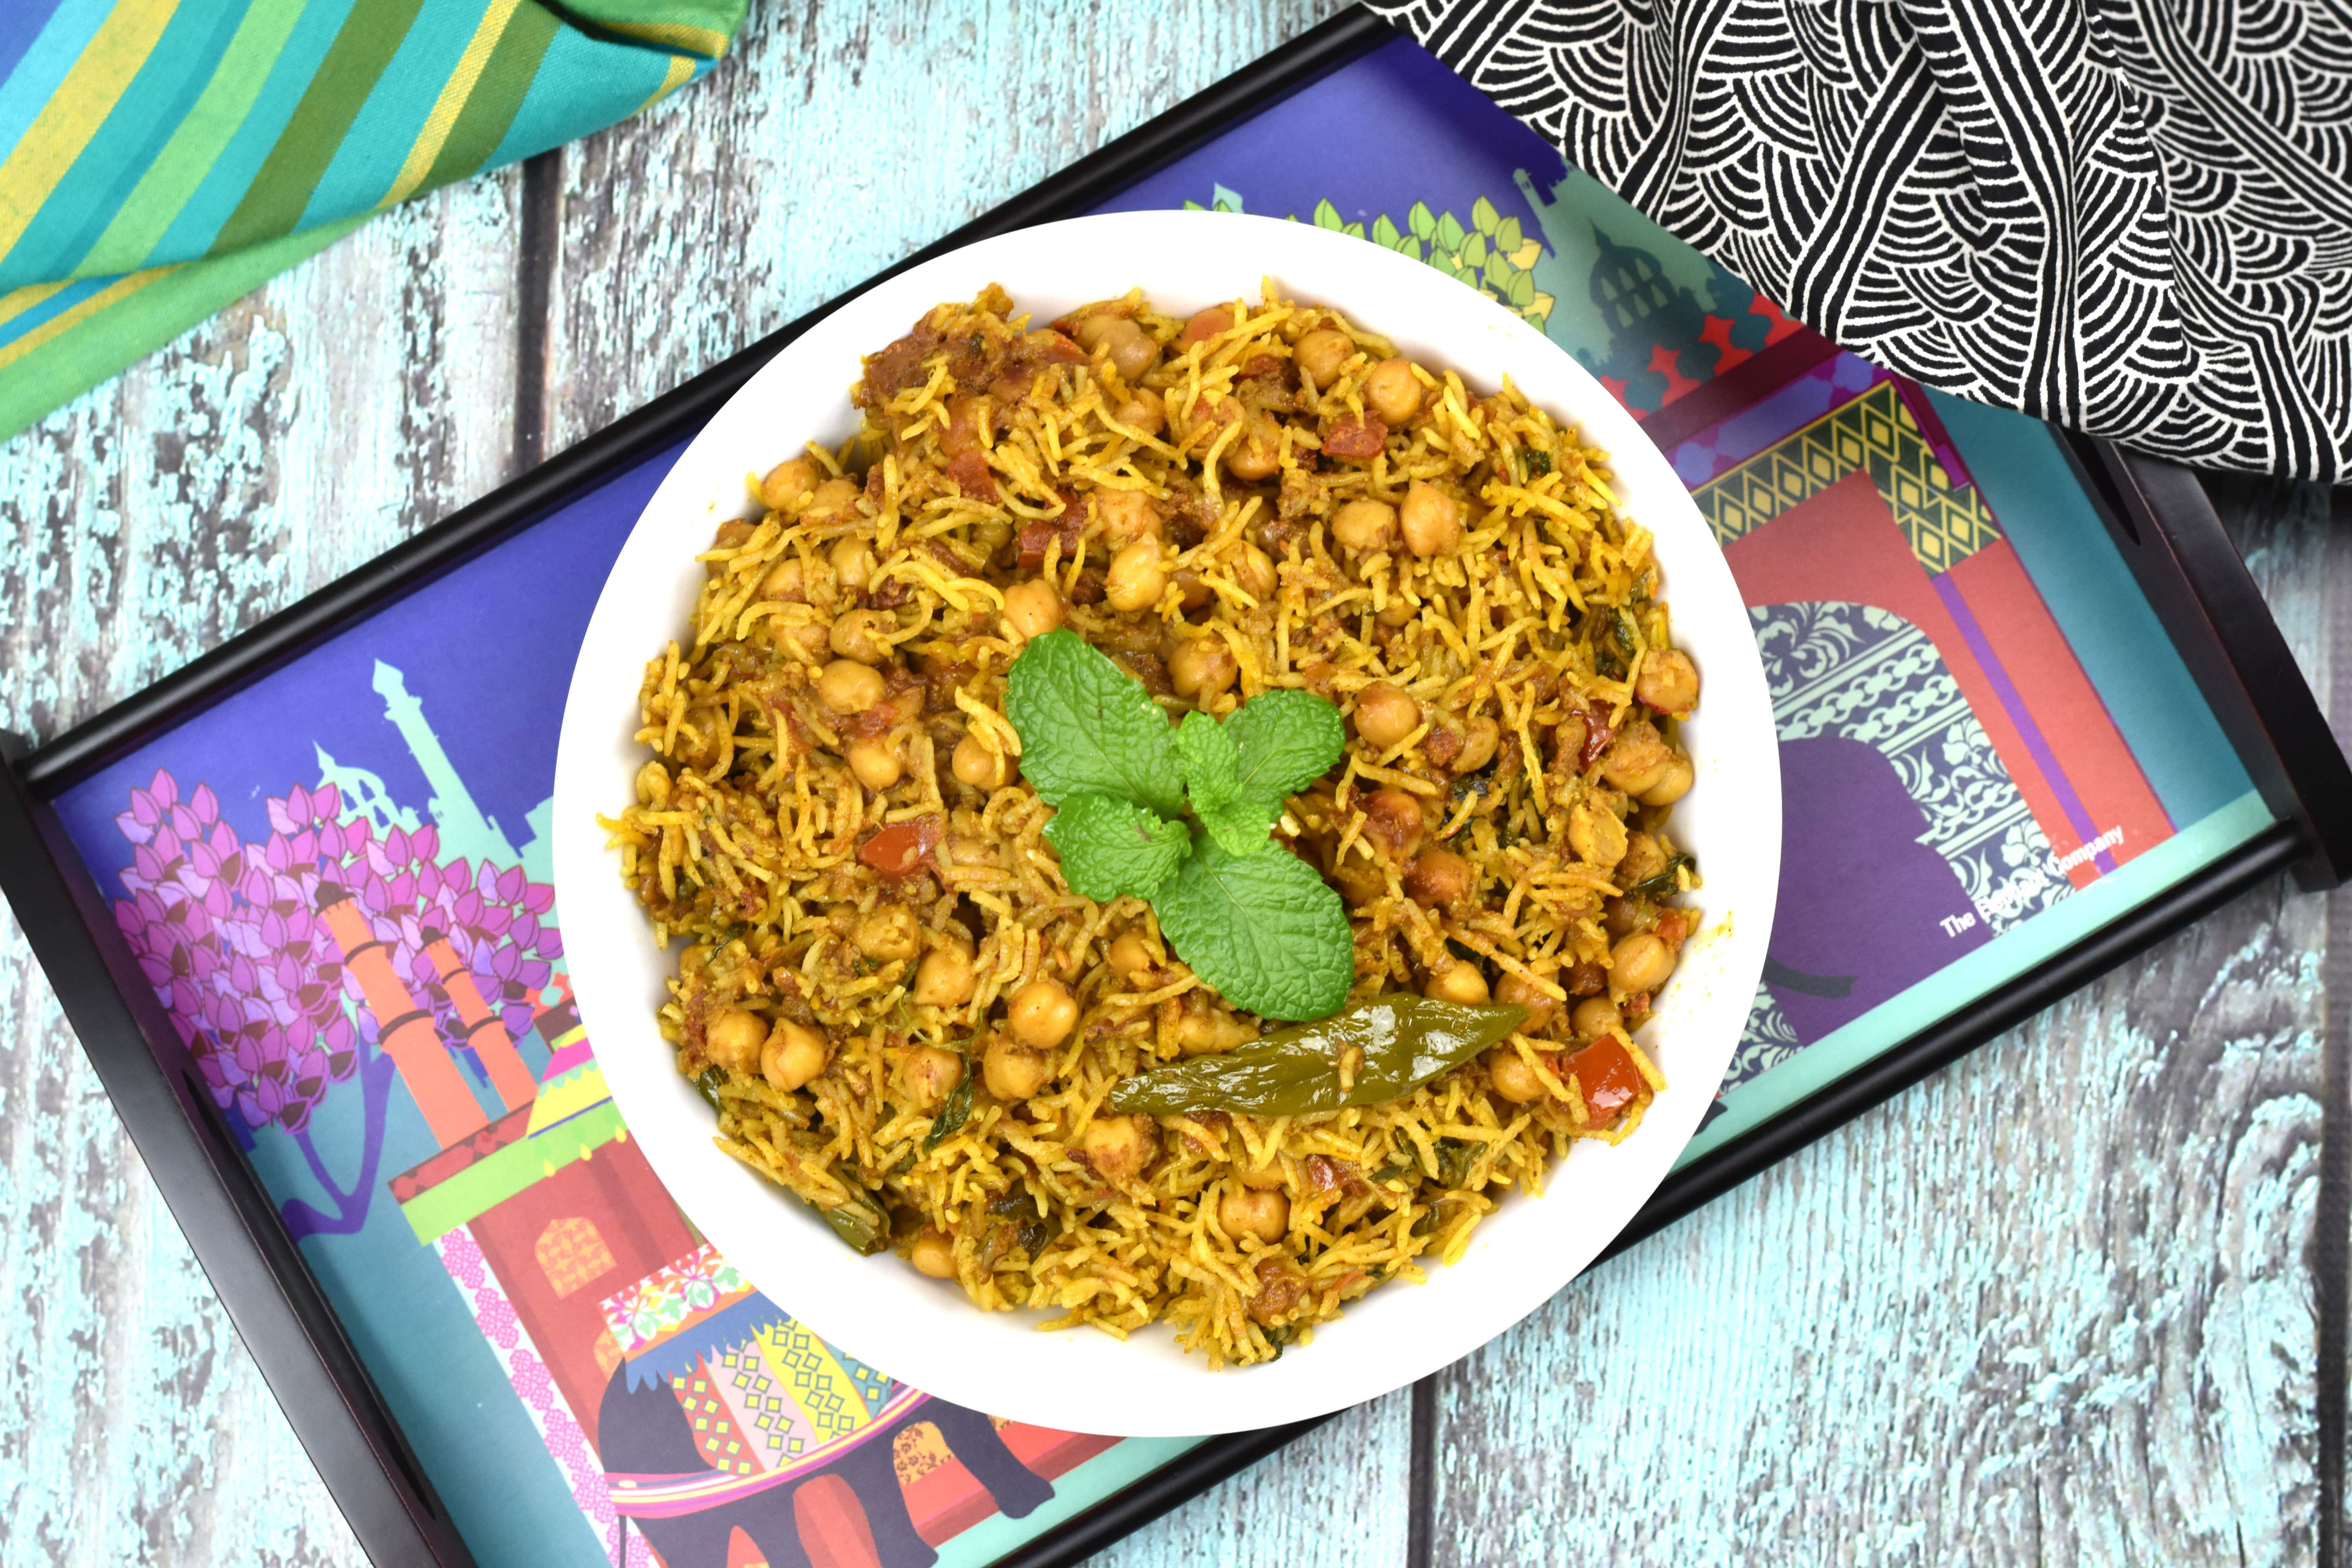 A chickpeas and rice pilaf served in a white bowl on a colorful tray.